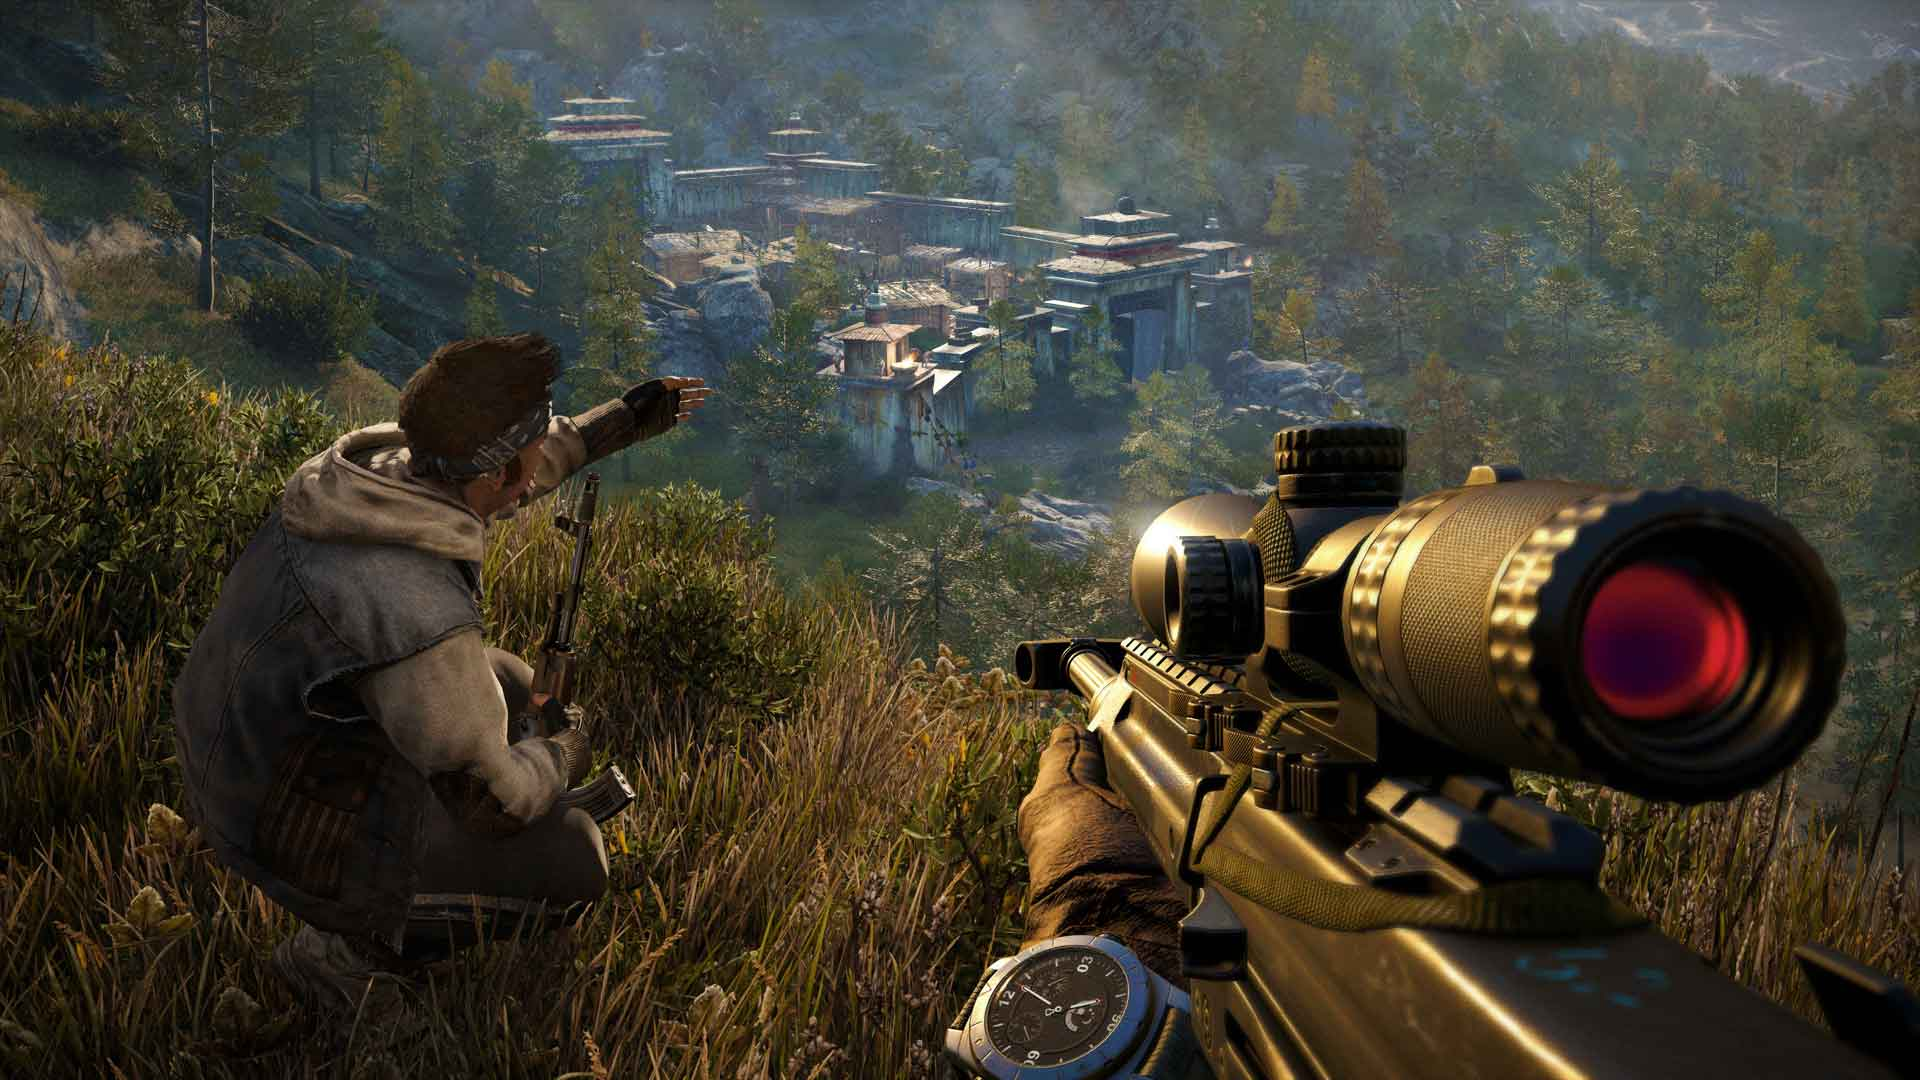 far cry 3 apk + data download for android